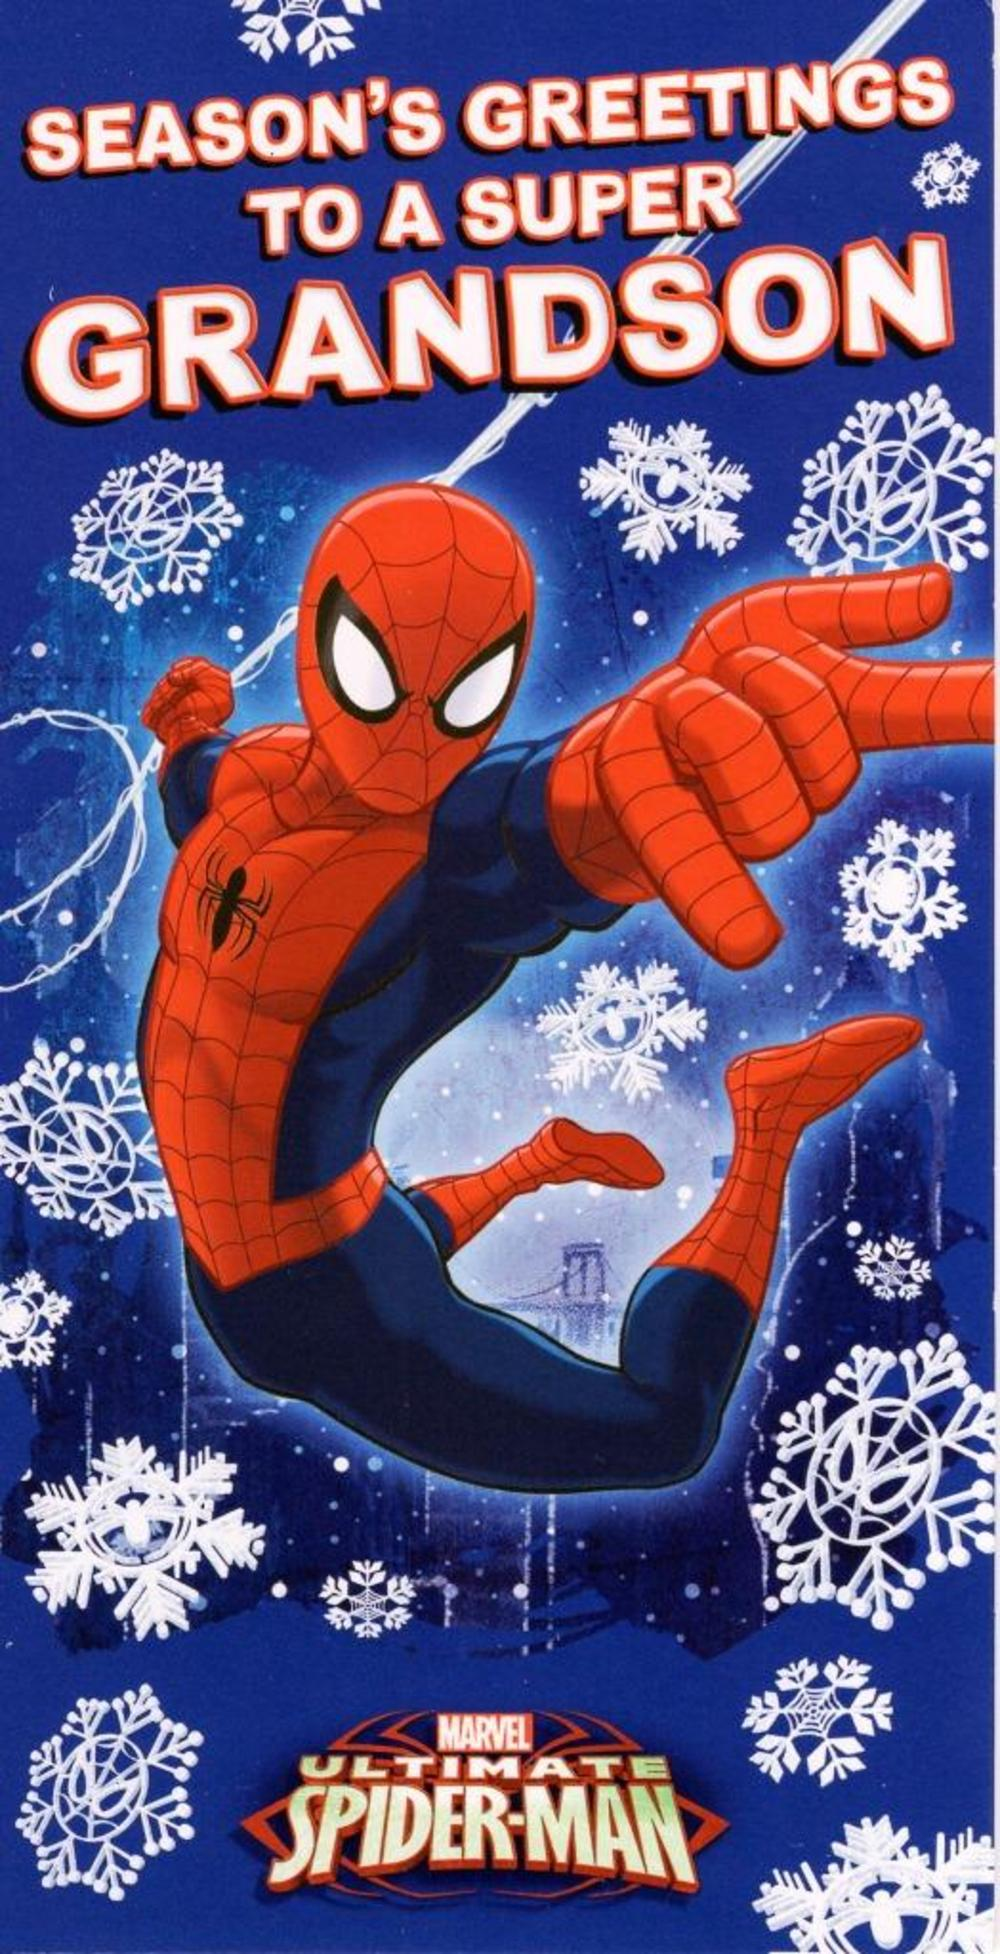 Grandson Spiderman Christmas Money Wallet Gift Card